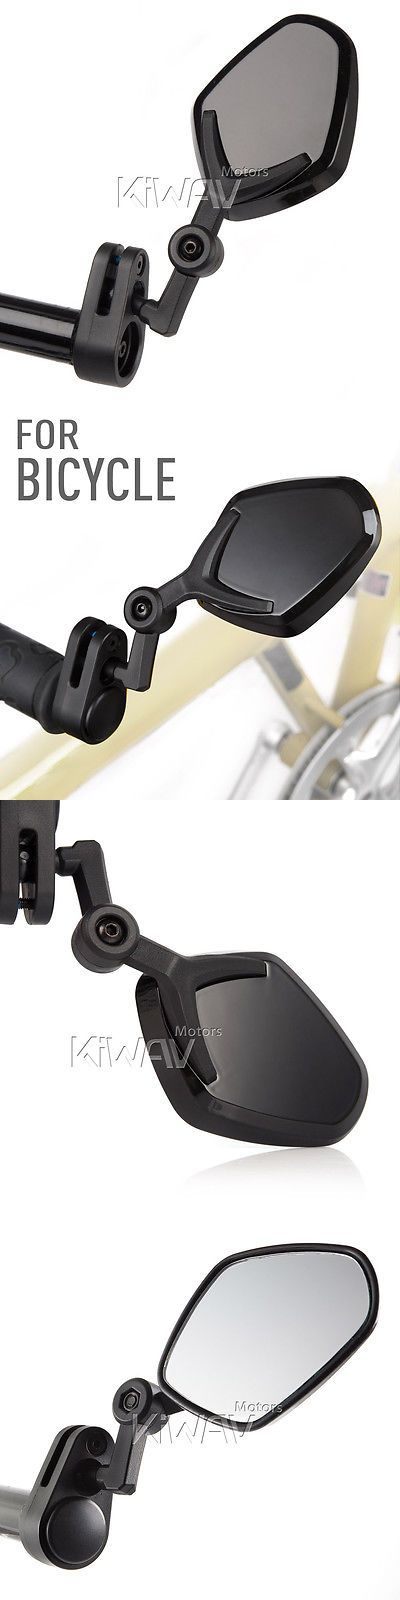 Mirrors 111264: Universal Bar End Adjustable Road Bike Cycling Safety Mirror Petal Glossy Black -> BUY IT NOW ONLY: $39 on eBay!